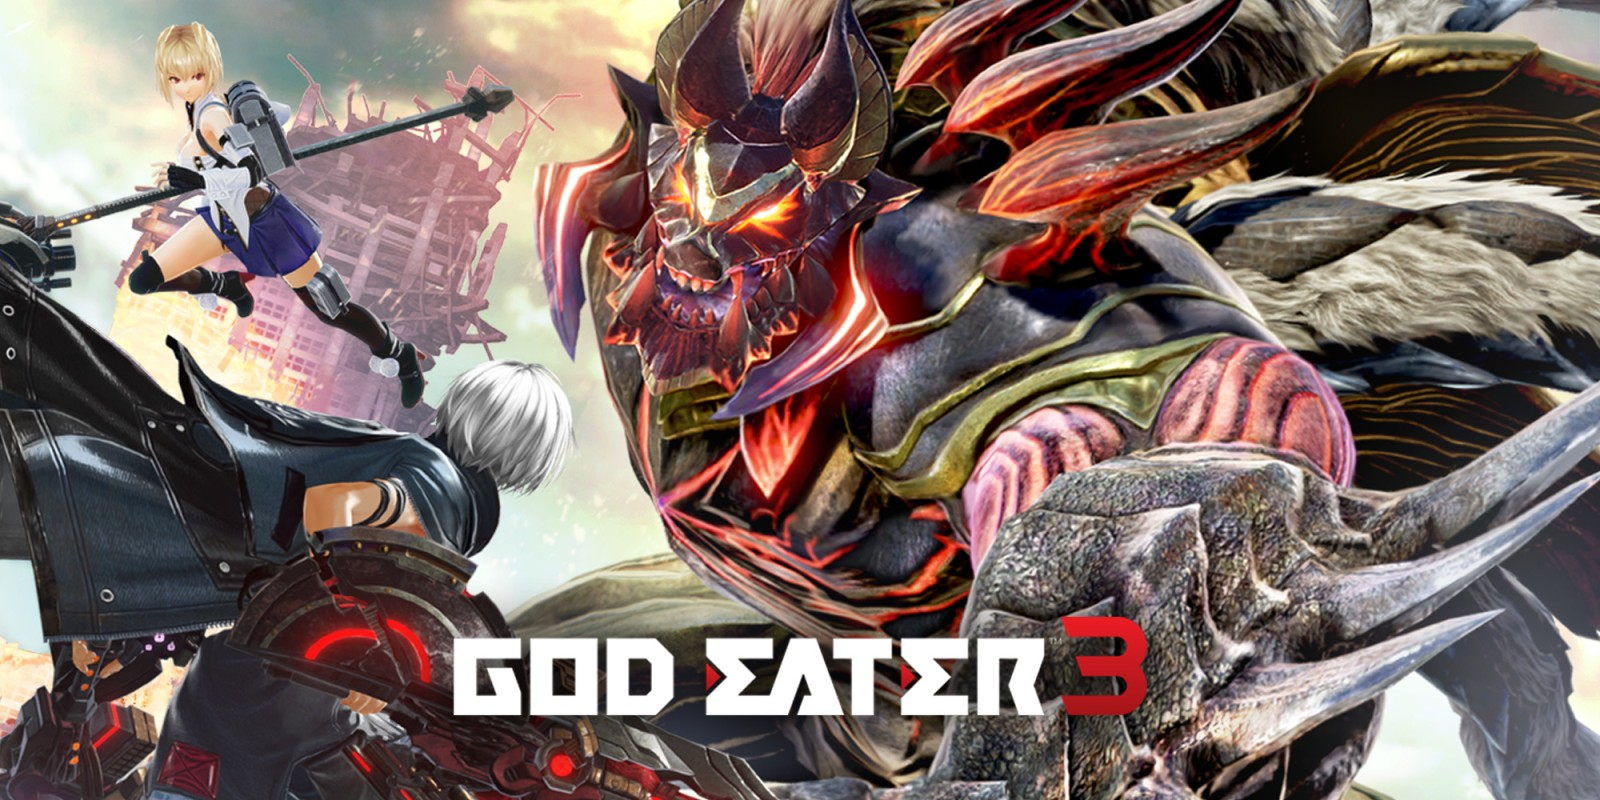 H2x1_NSwitch_GodEater3_image1600w.jpg